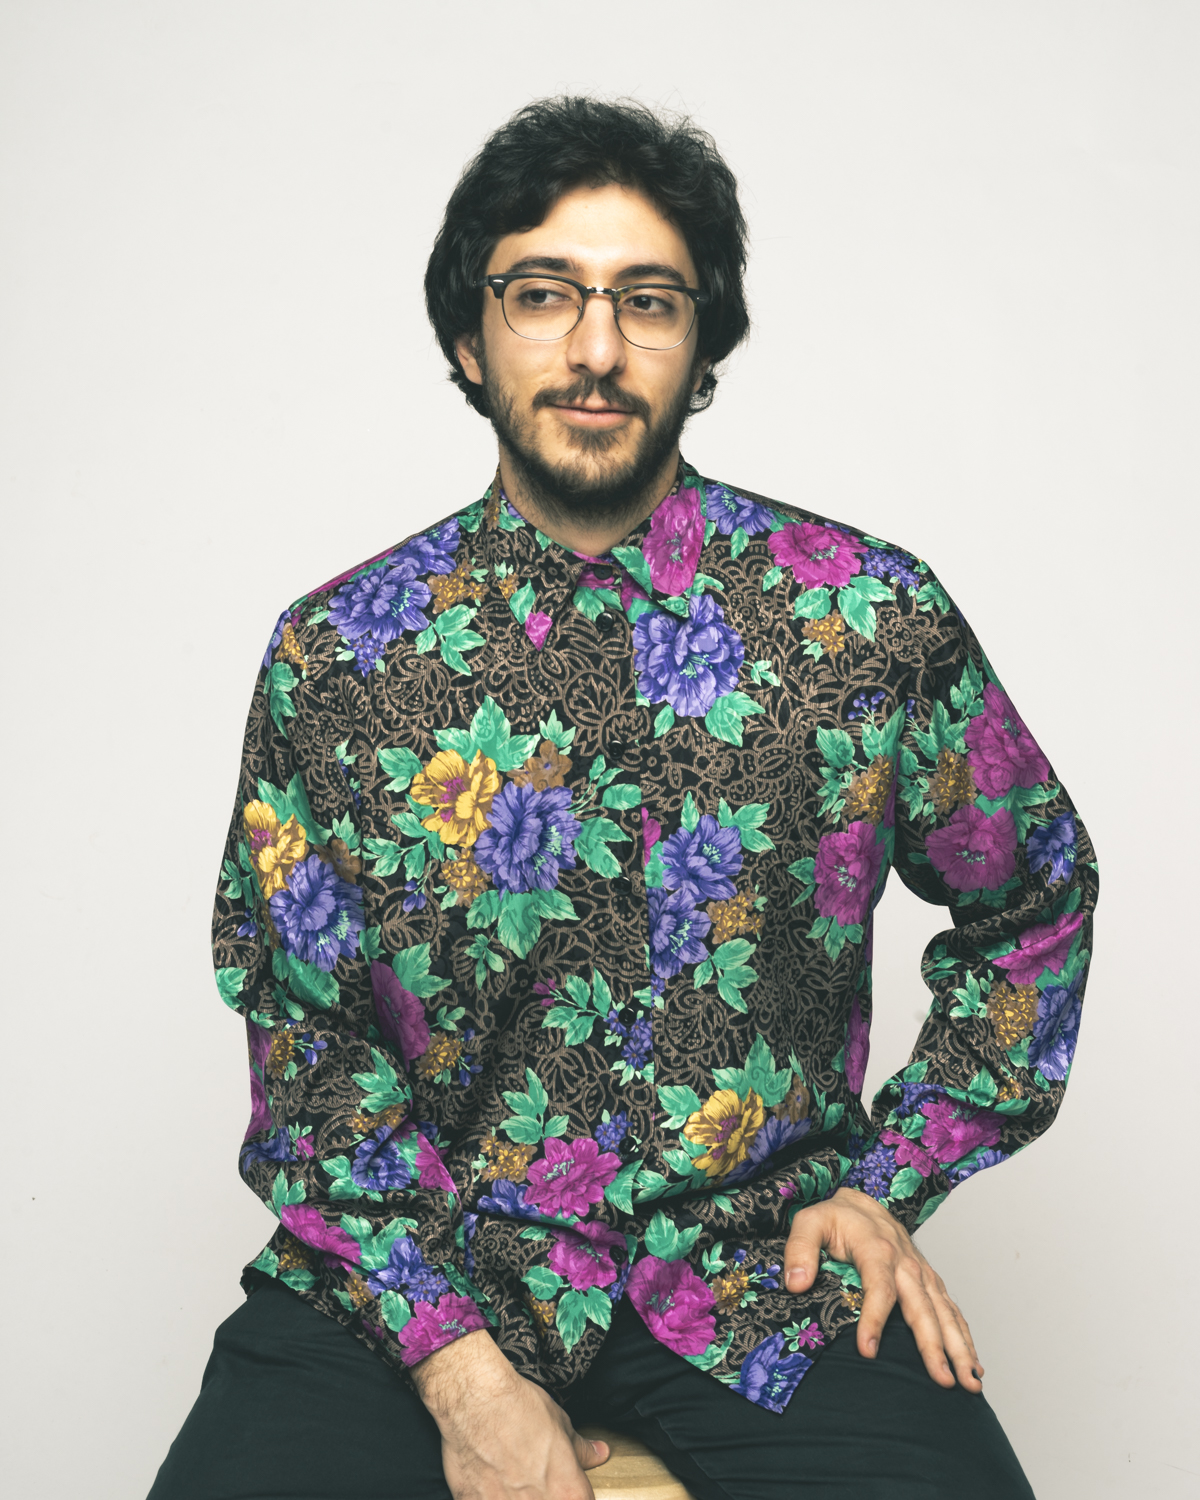 Behrooz Mihankhah - E.Piano/keys - He commands a rich taste in music which is only matched by the taste in his shirts. He was one of the very first members to join Superfluid and play through it's many forms in the first couple of years. A jazz aficionado, Behrooz can be found in the classrooms and libraries of St FX University trying to grasp a deeper understanding of the musical cosmos when he is not slaying a Superfluid set at a festival, theatre, hall or pub near you. He is also the composer/bandleader/e.piano player for his jazz/fusion project Lazeez.